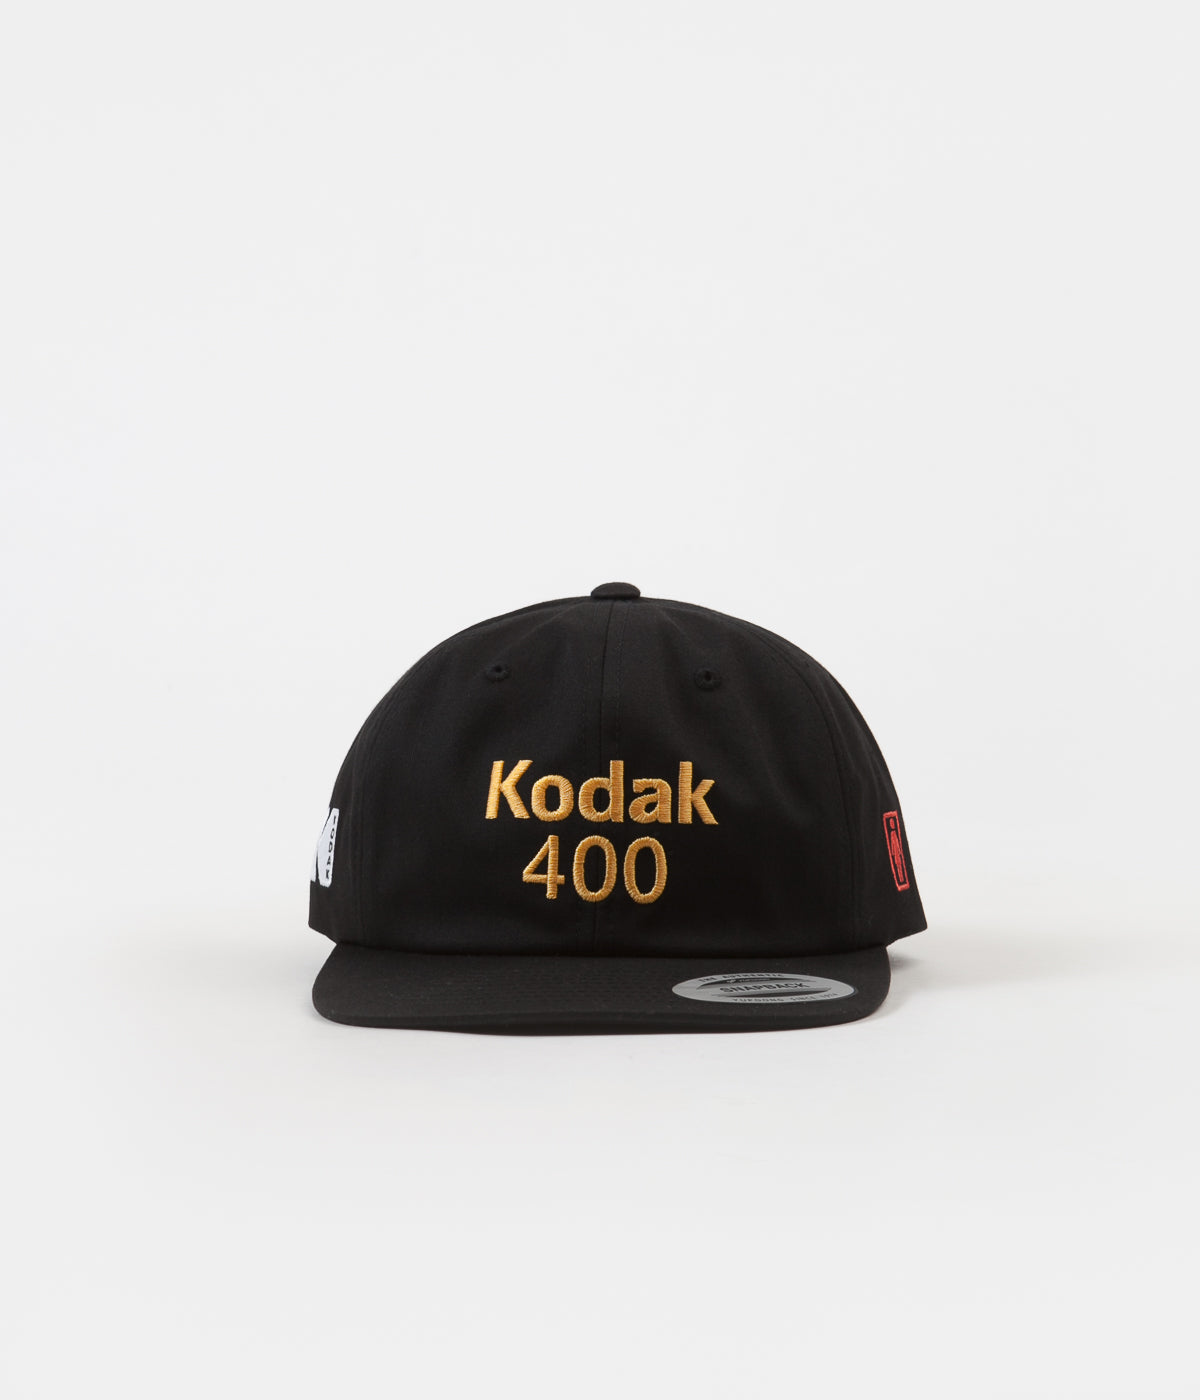 Girl x Kodak Gold 400 6 Panel Cap - Black